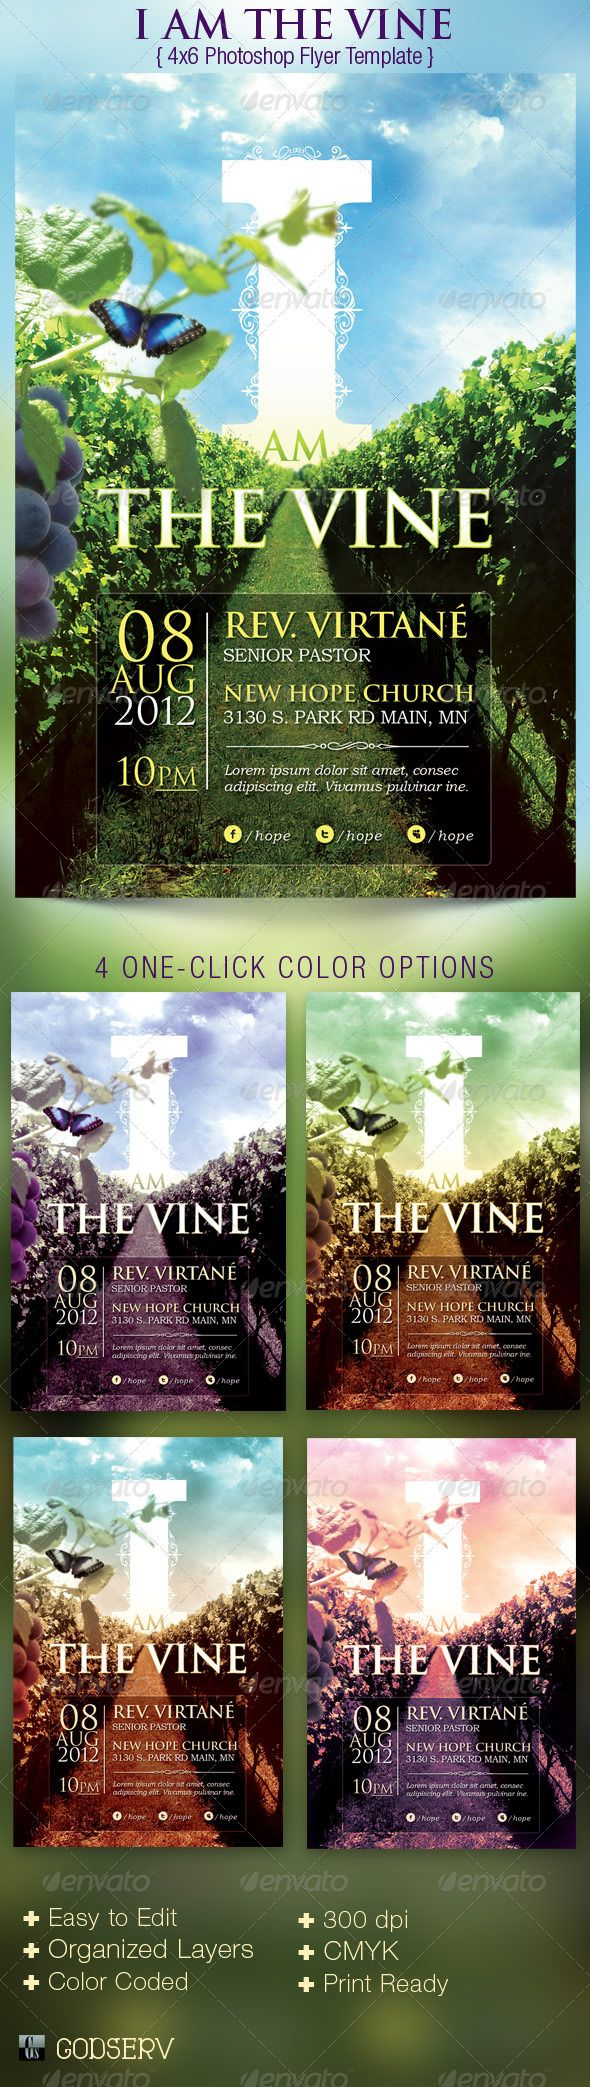 best images about church flyers vbs functions etc on i am the vine church flyer poster template